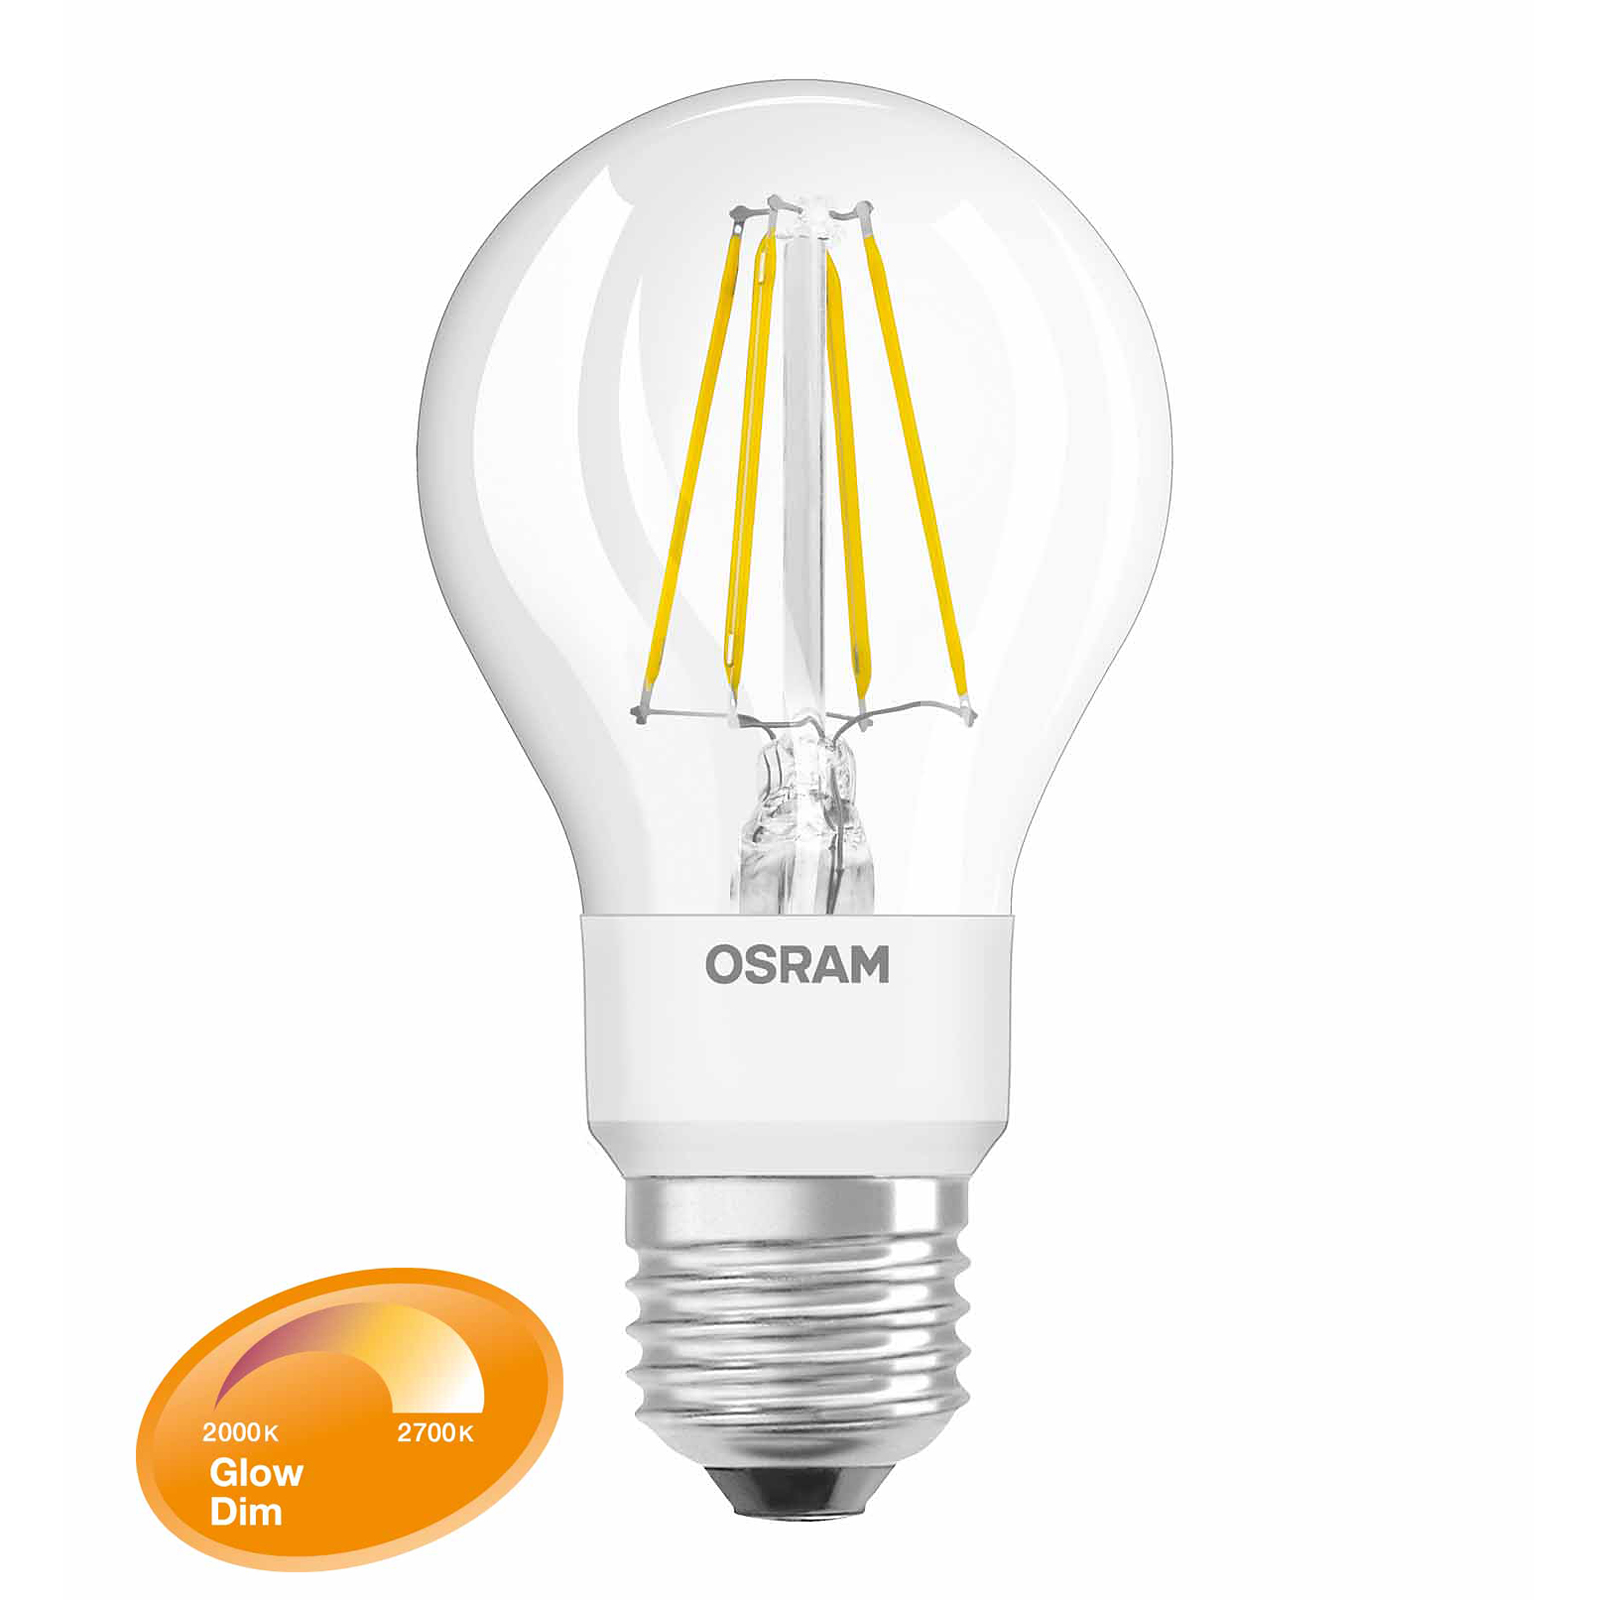 osram led filament glow dim classic a 55 e27 7w 55 w 750 lm warmwei dimmbar. Black Bedroom Furniture Sets. Home Design Ideas